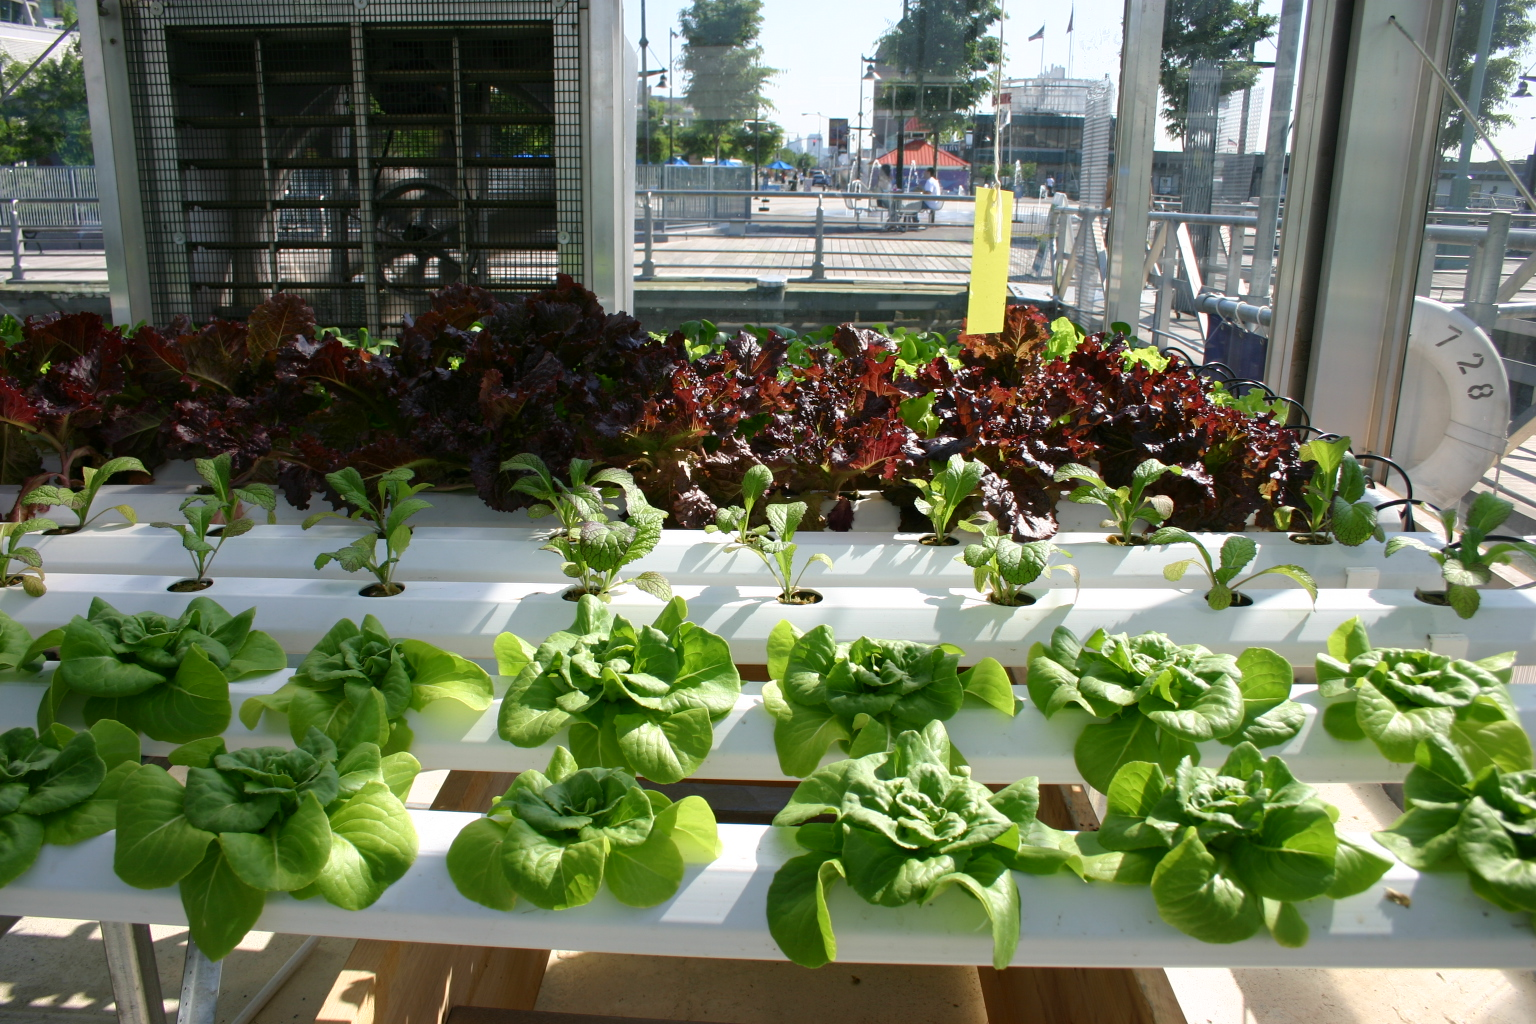 Hydroponic lettuce growing in a city.